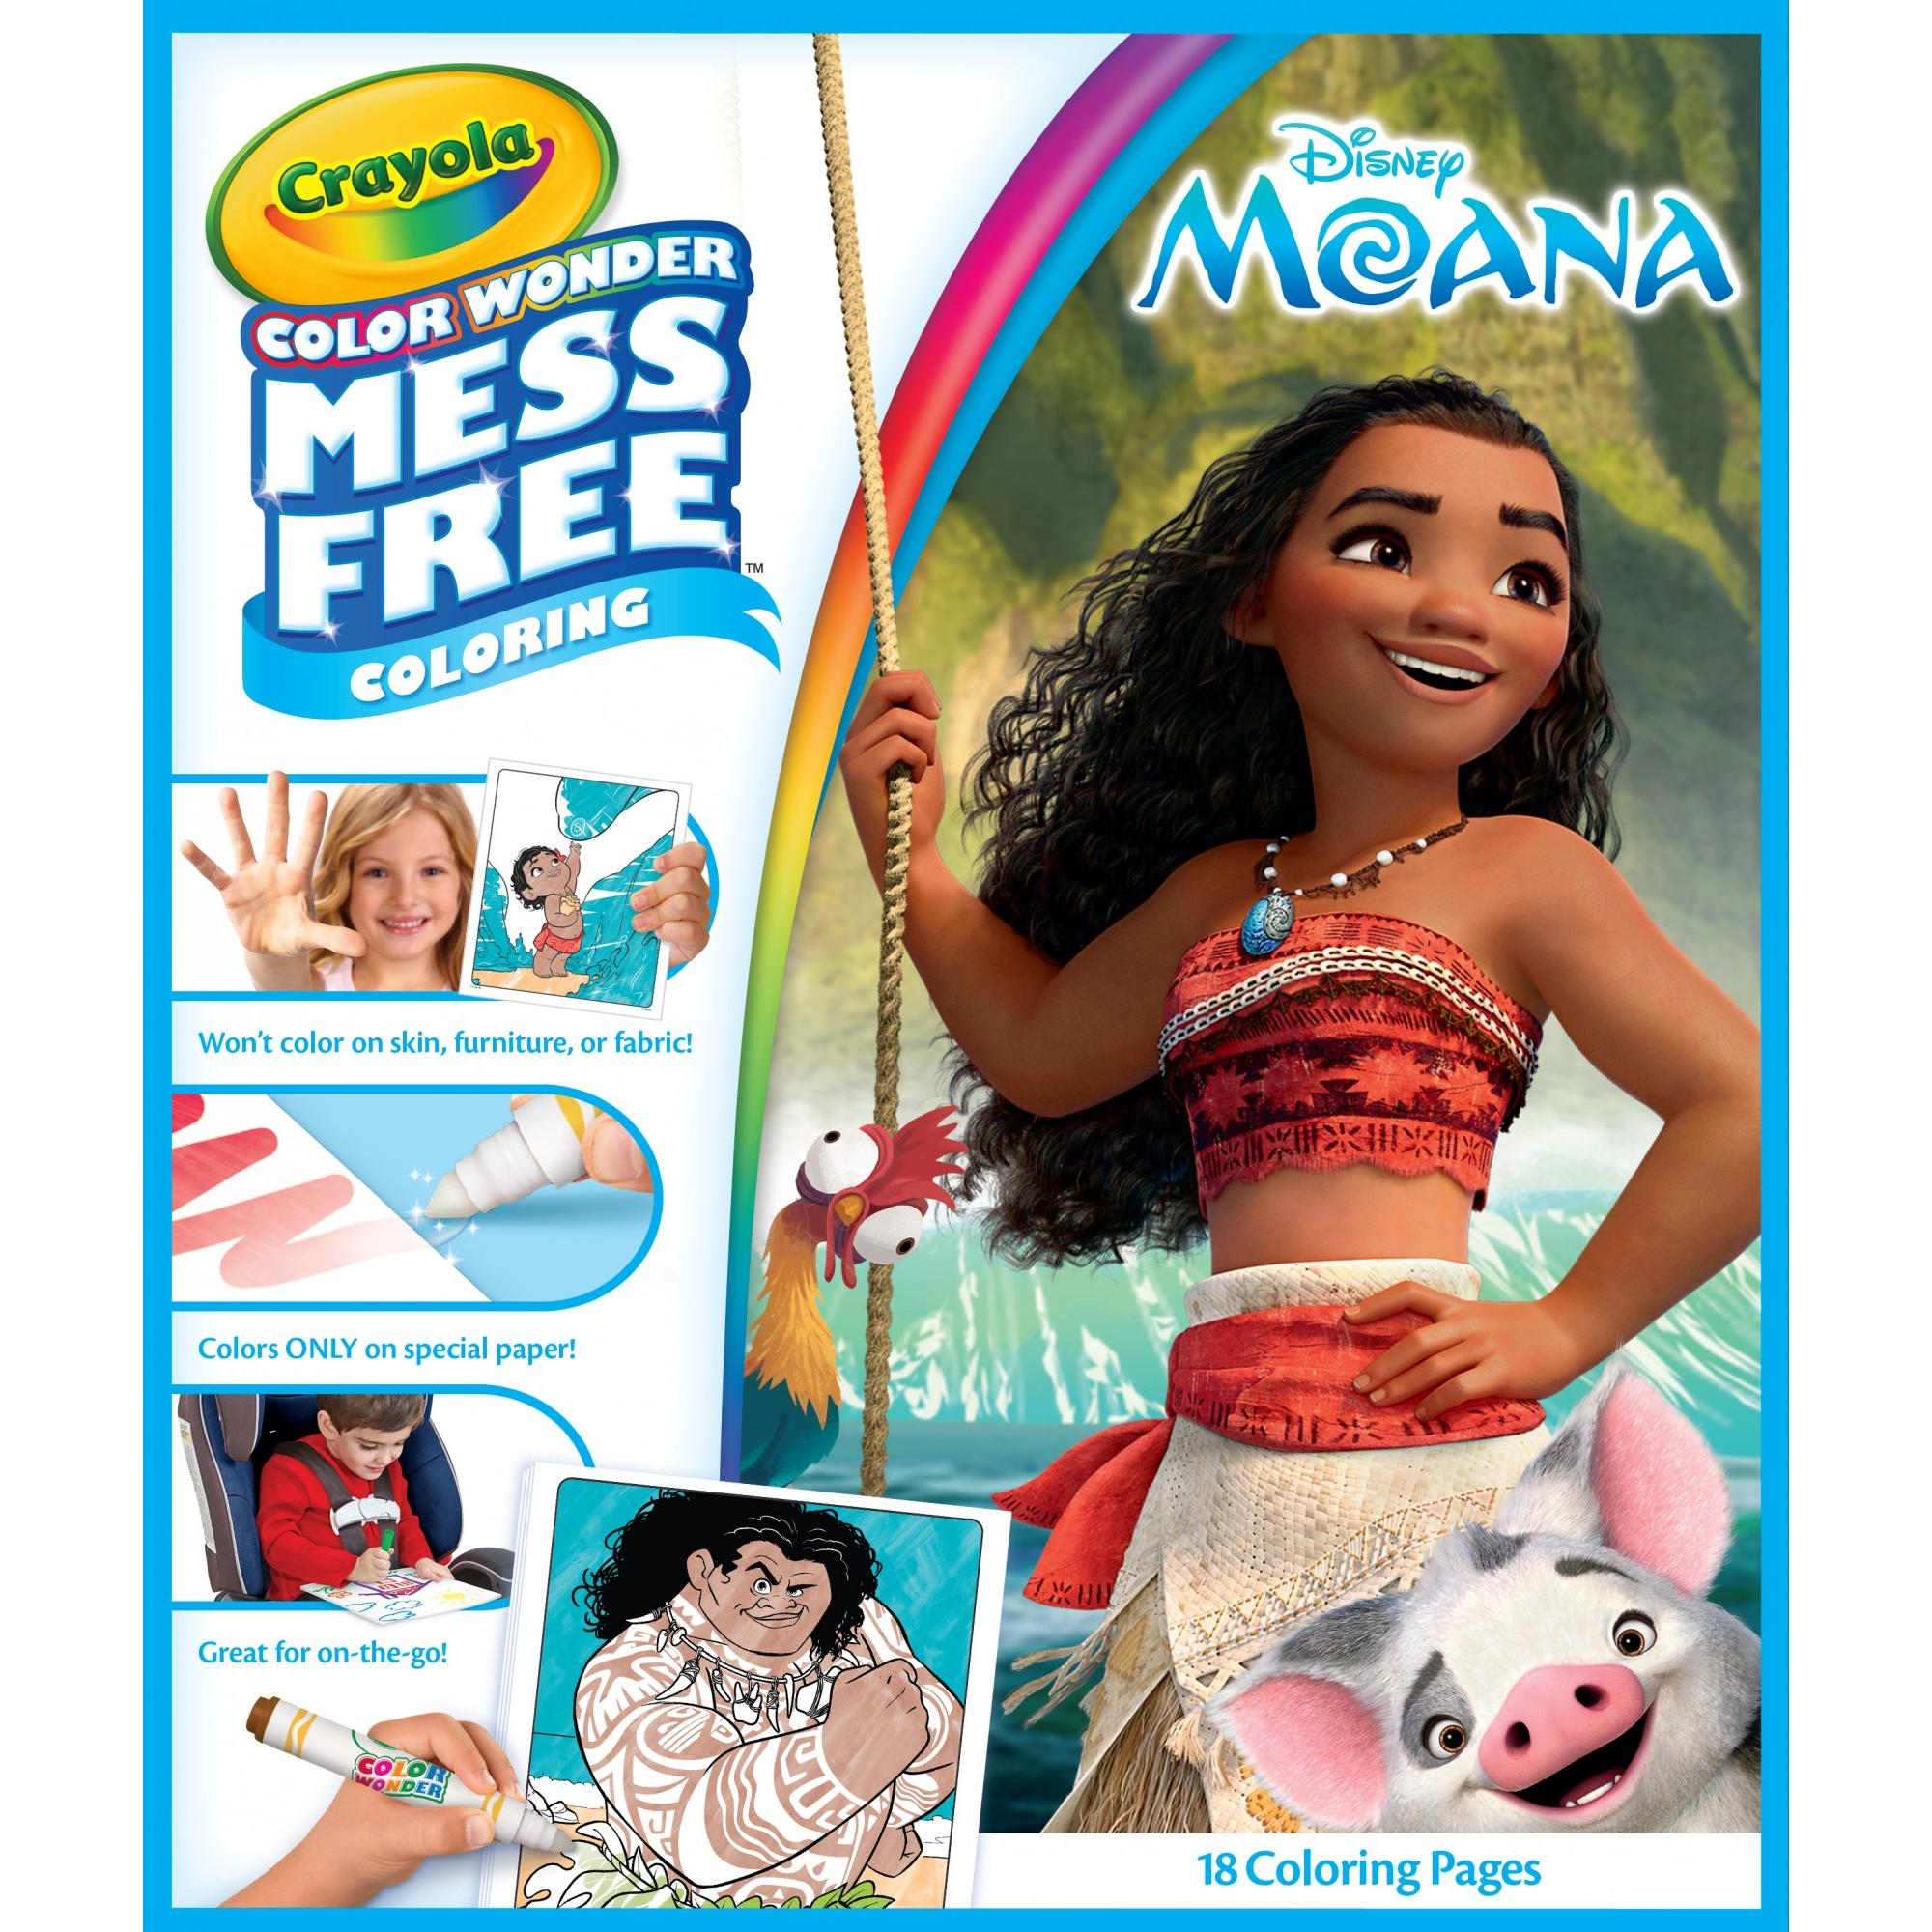 Moana coloring pages crayola - Crayola Color Wonder Disney S Moana Coloring Book 18 Pages With 5 Mess Free Markers Walmart Com